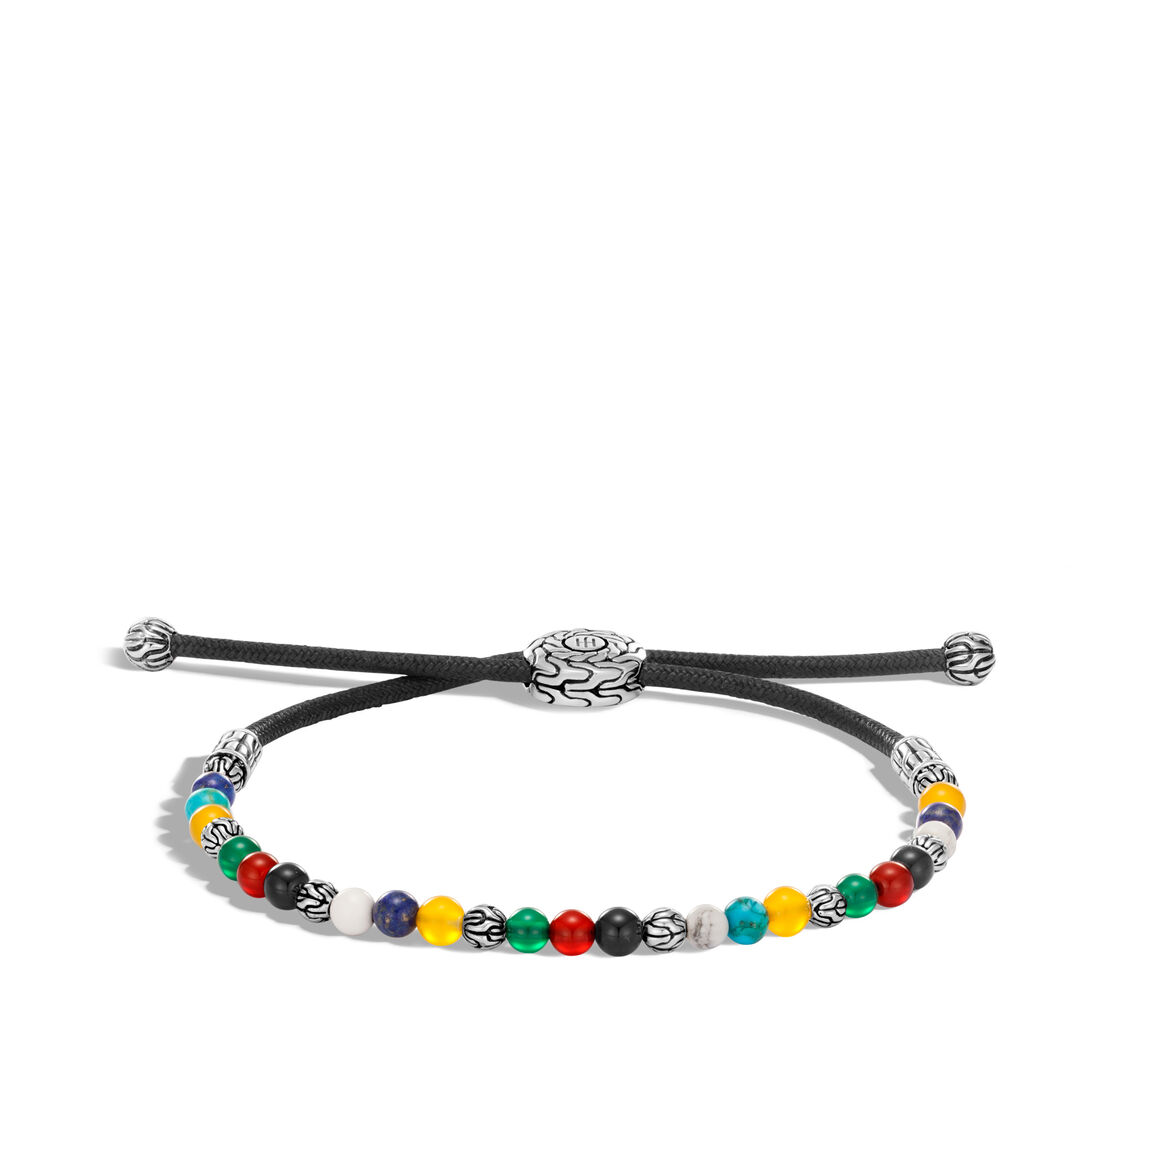 Classic Chain Pull Through Bead Bracelet in Silver with Gem